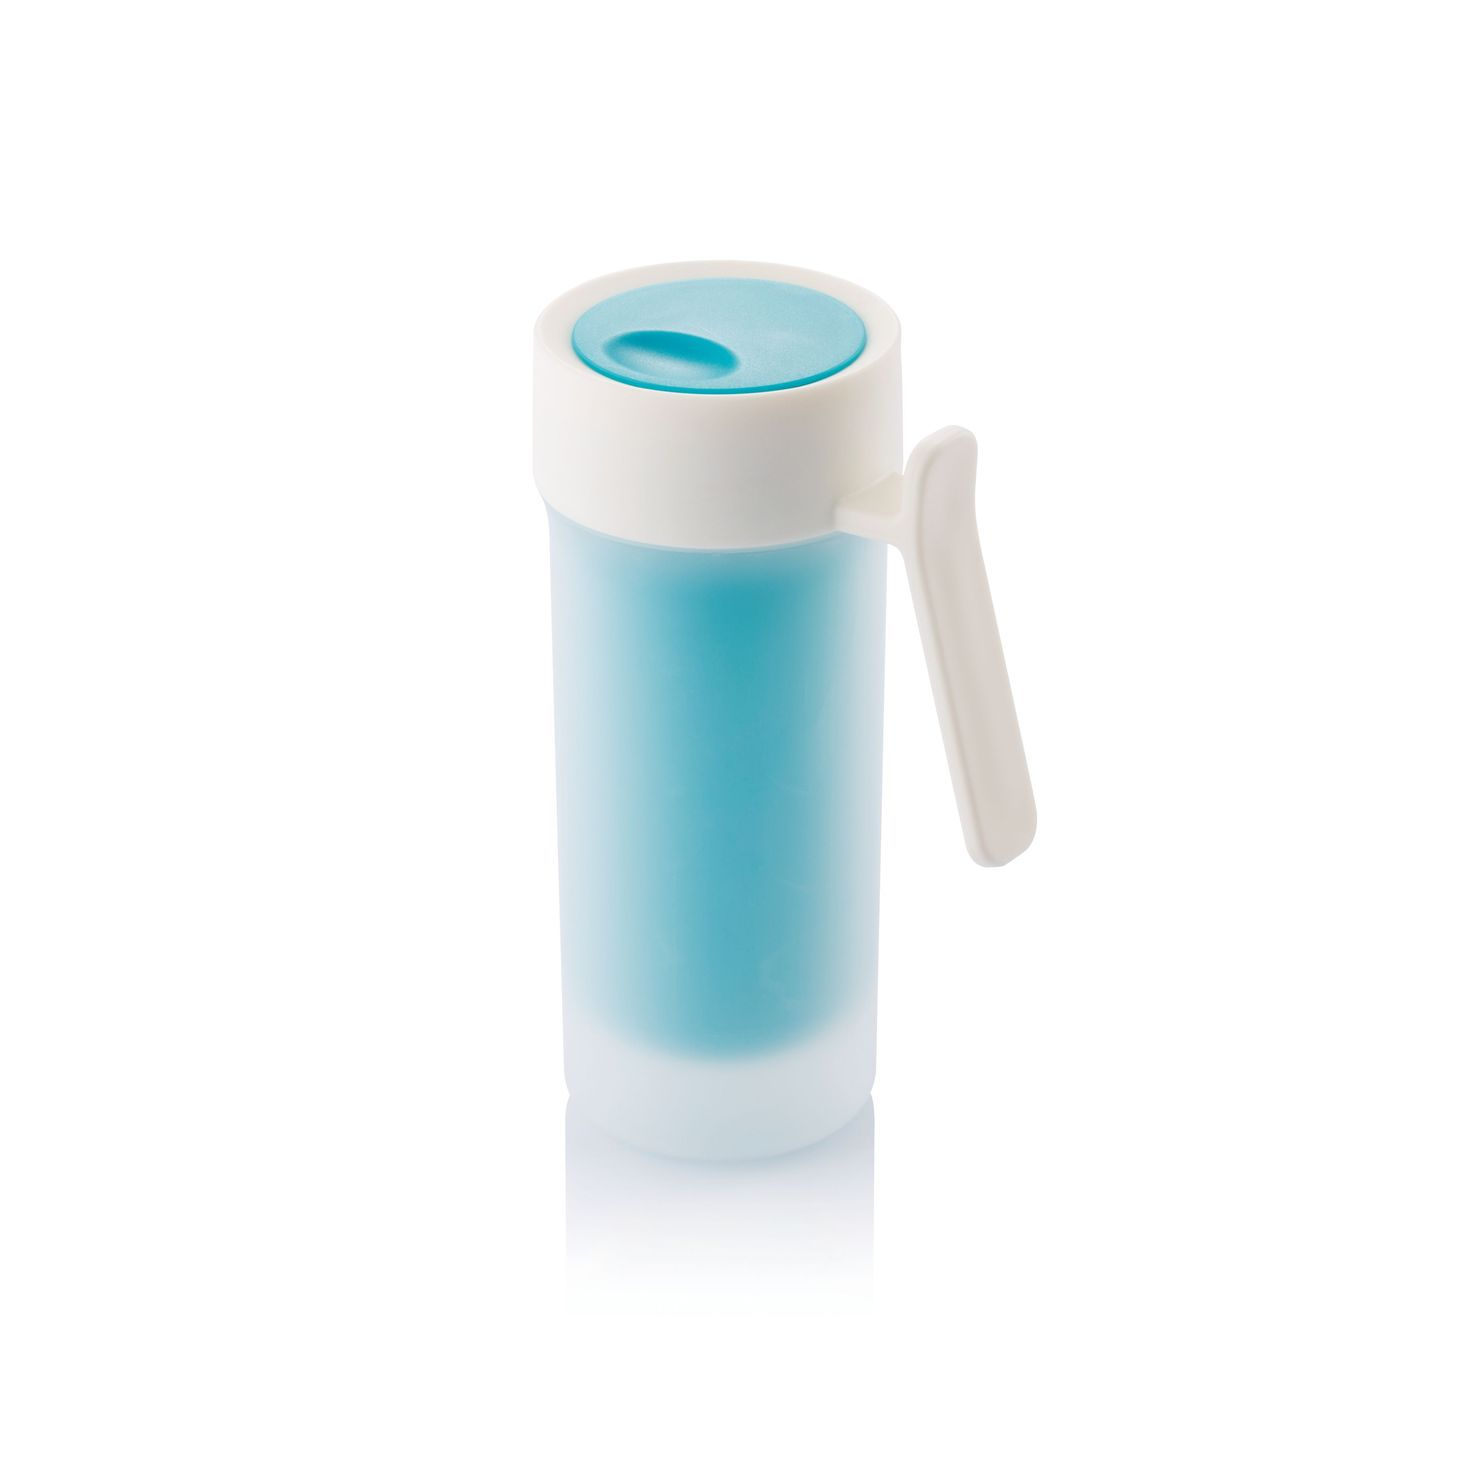 Turquoise Thermosmok | Frosted | 275 ml